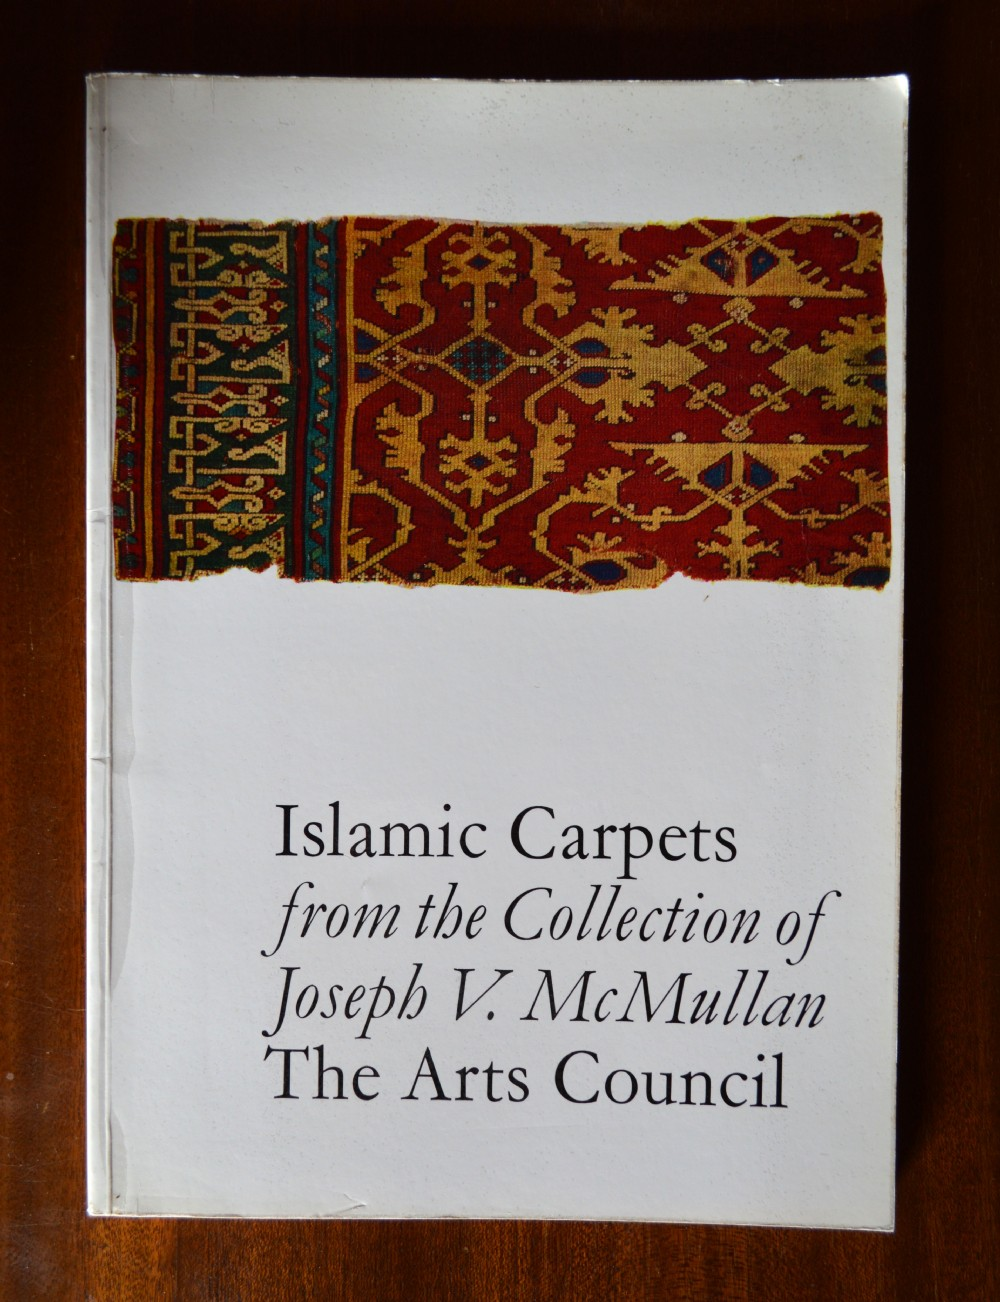 'islamic carpets from the collection of joseph v mcmullen'